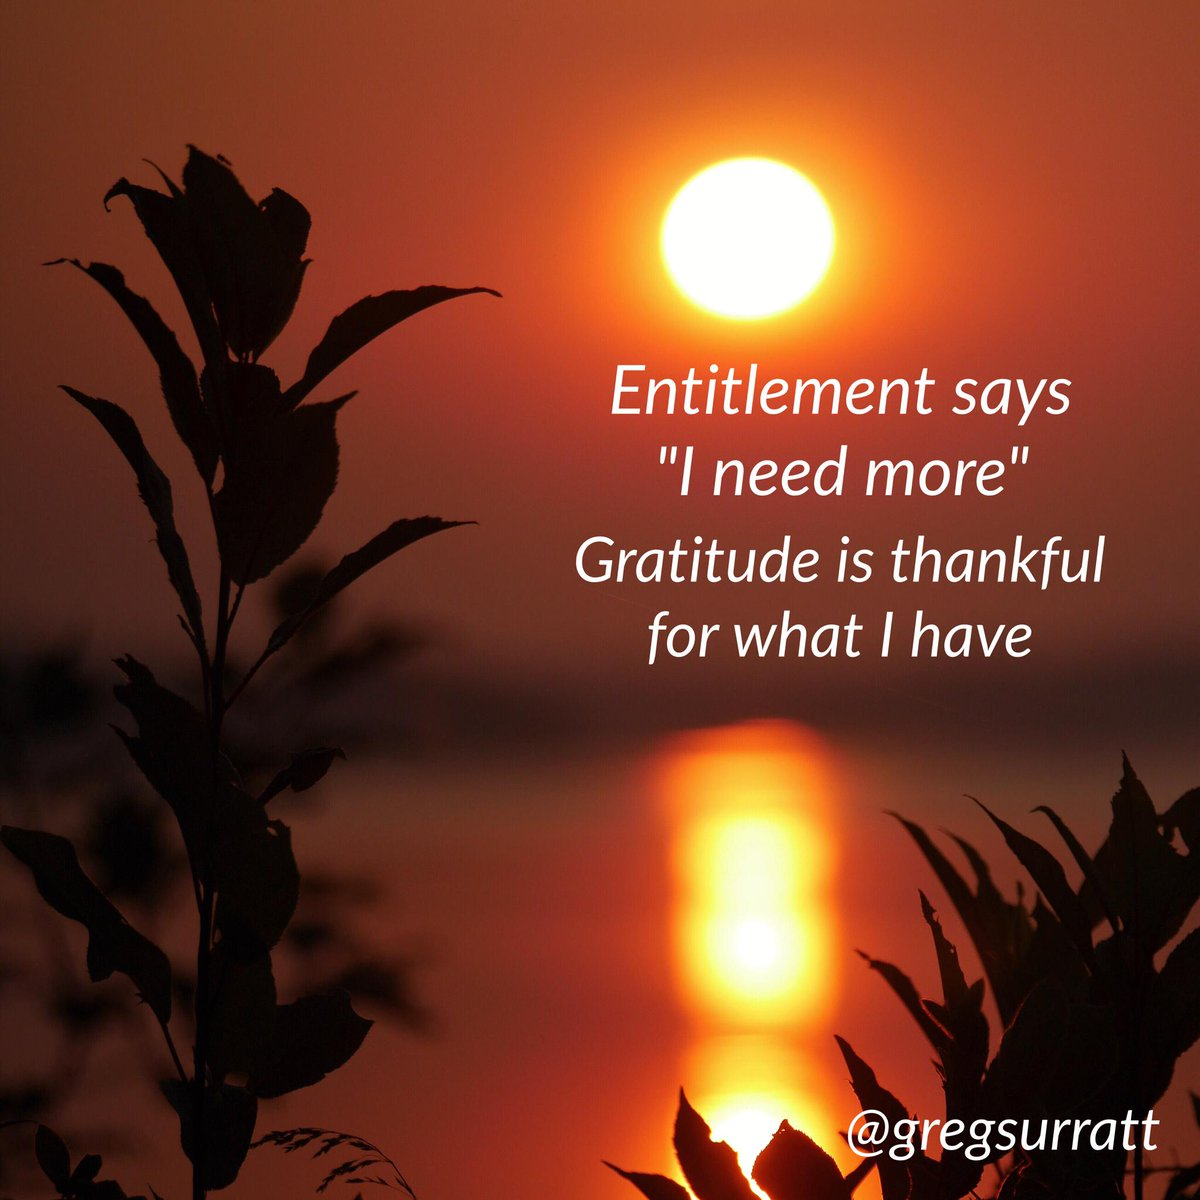 When entitlement moves in, gratefulness has to leave.   Choose wisely  How to have a great day http://t.co/2L8gjFQDes http://t.co/JmUZ20QCcM